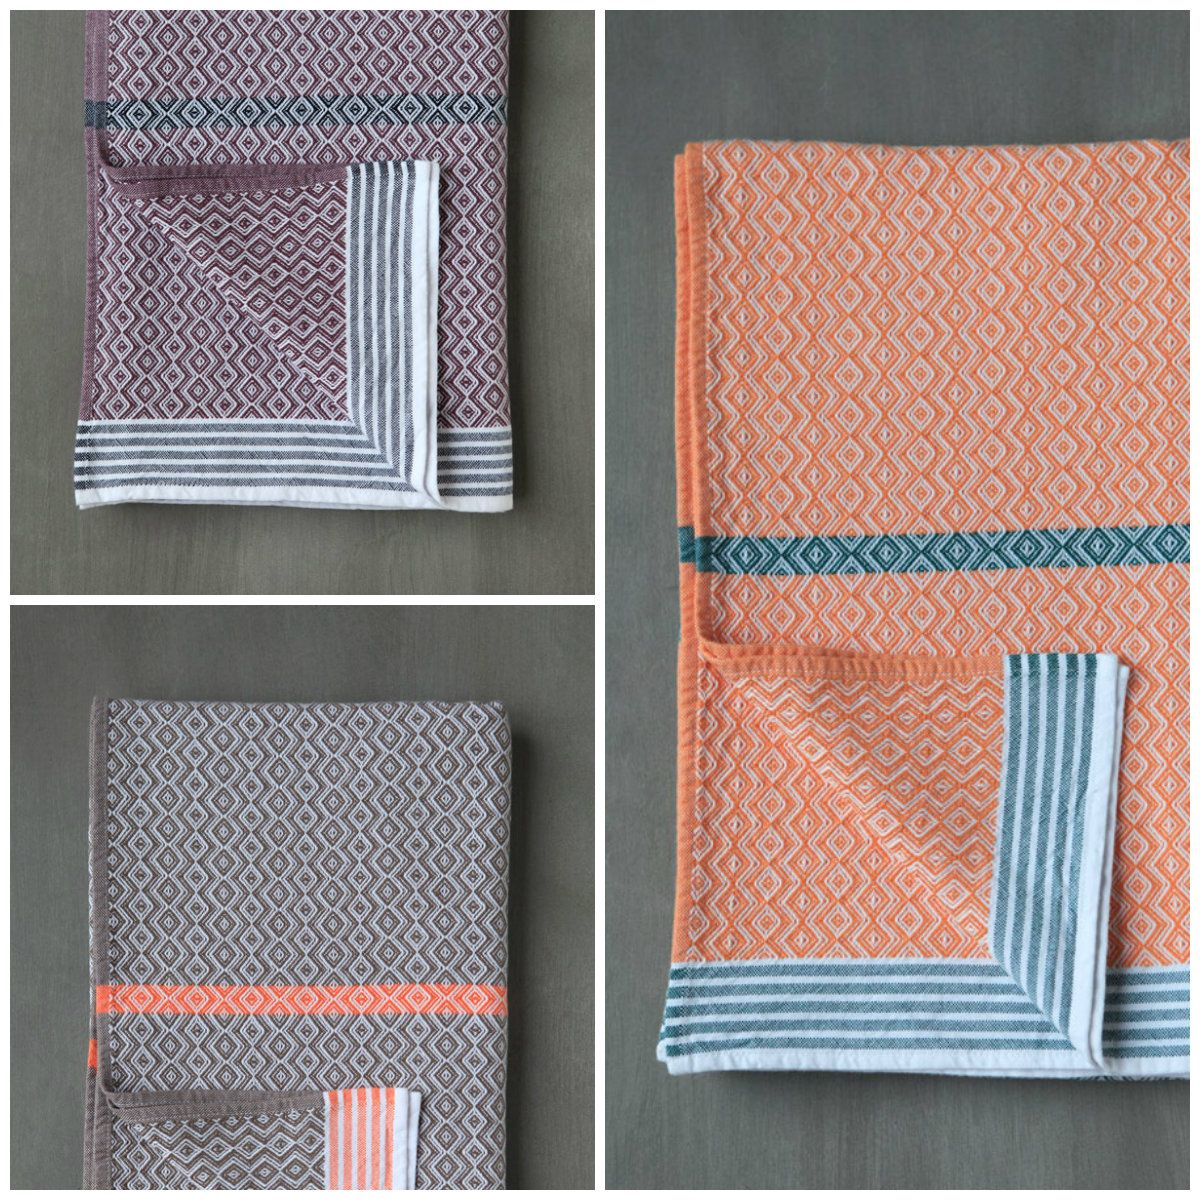 Cultured Home Accessories --- The Itawuli by Mungo, take on Basotho ...